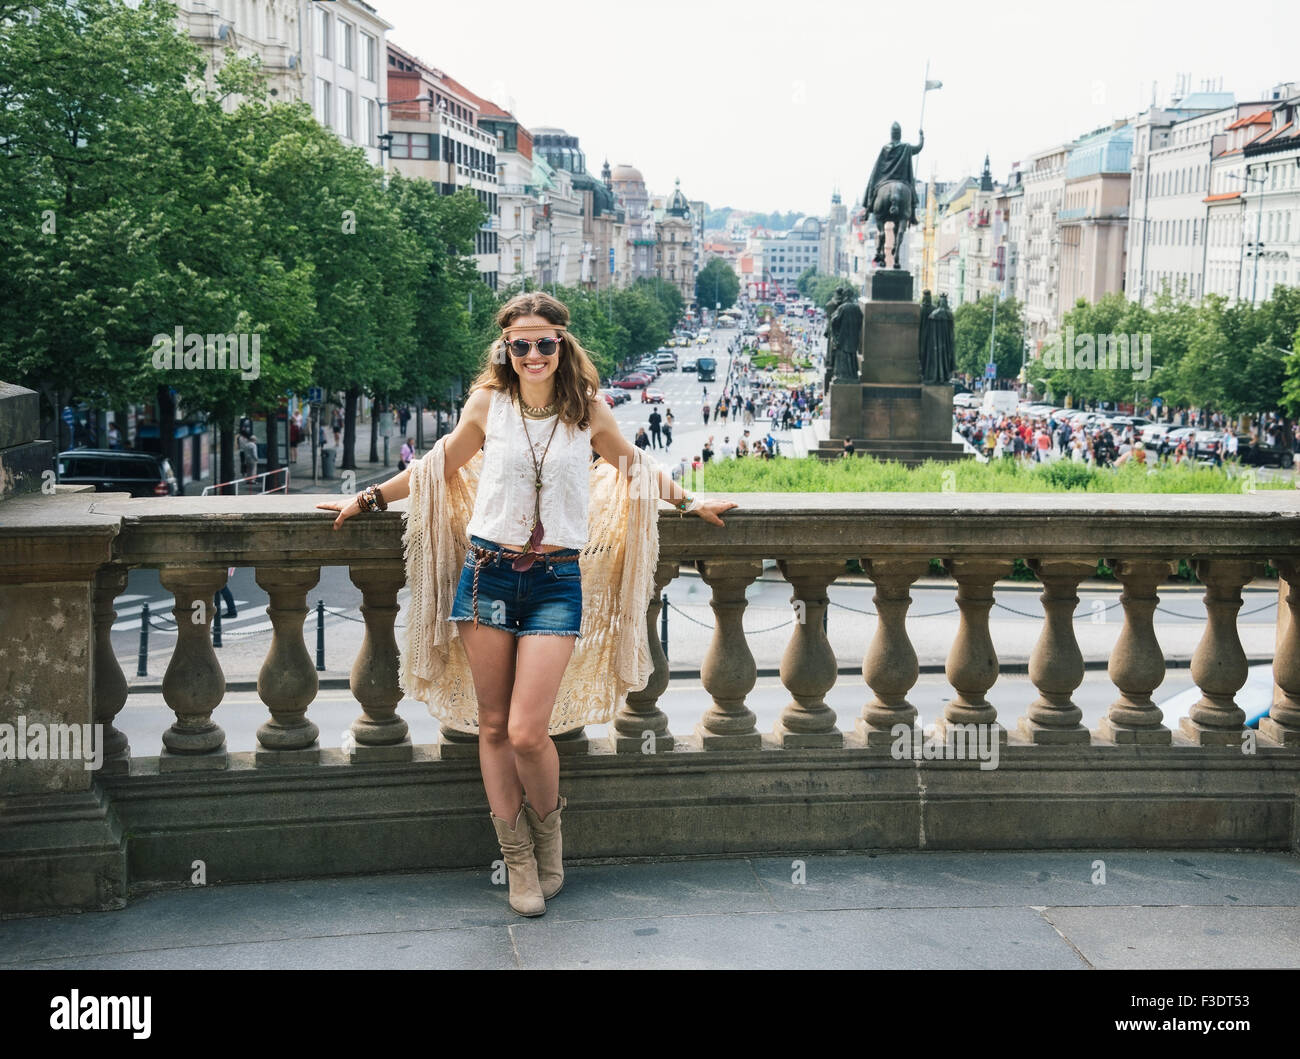 Full length portrait of cheerful longhaired hippy-looking woman tourist in knitted shawl and white blouse standing - Stock Image